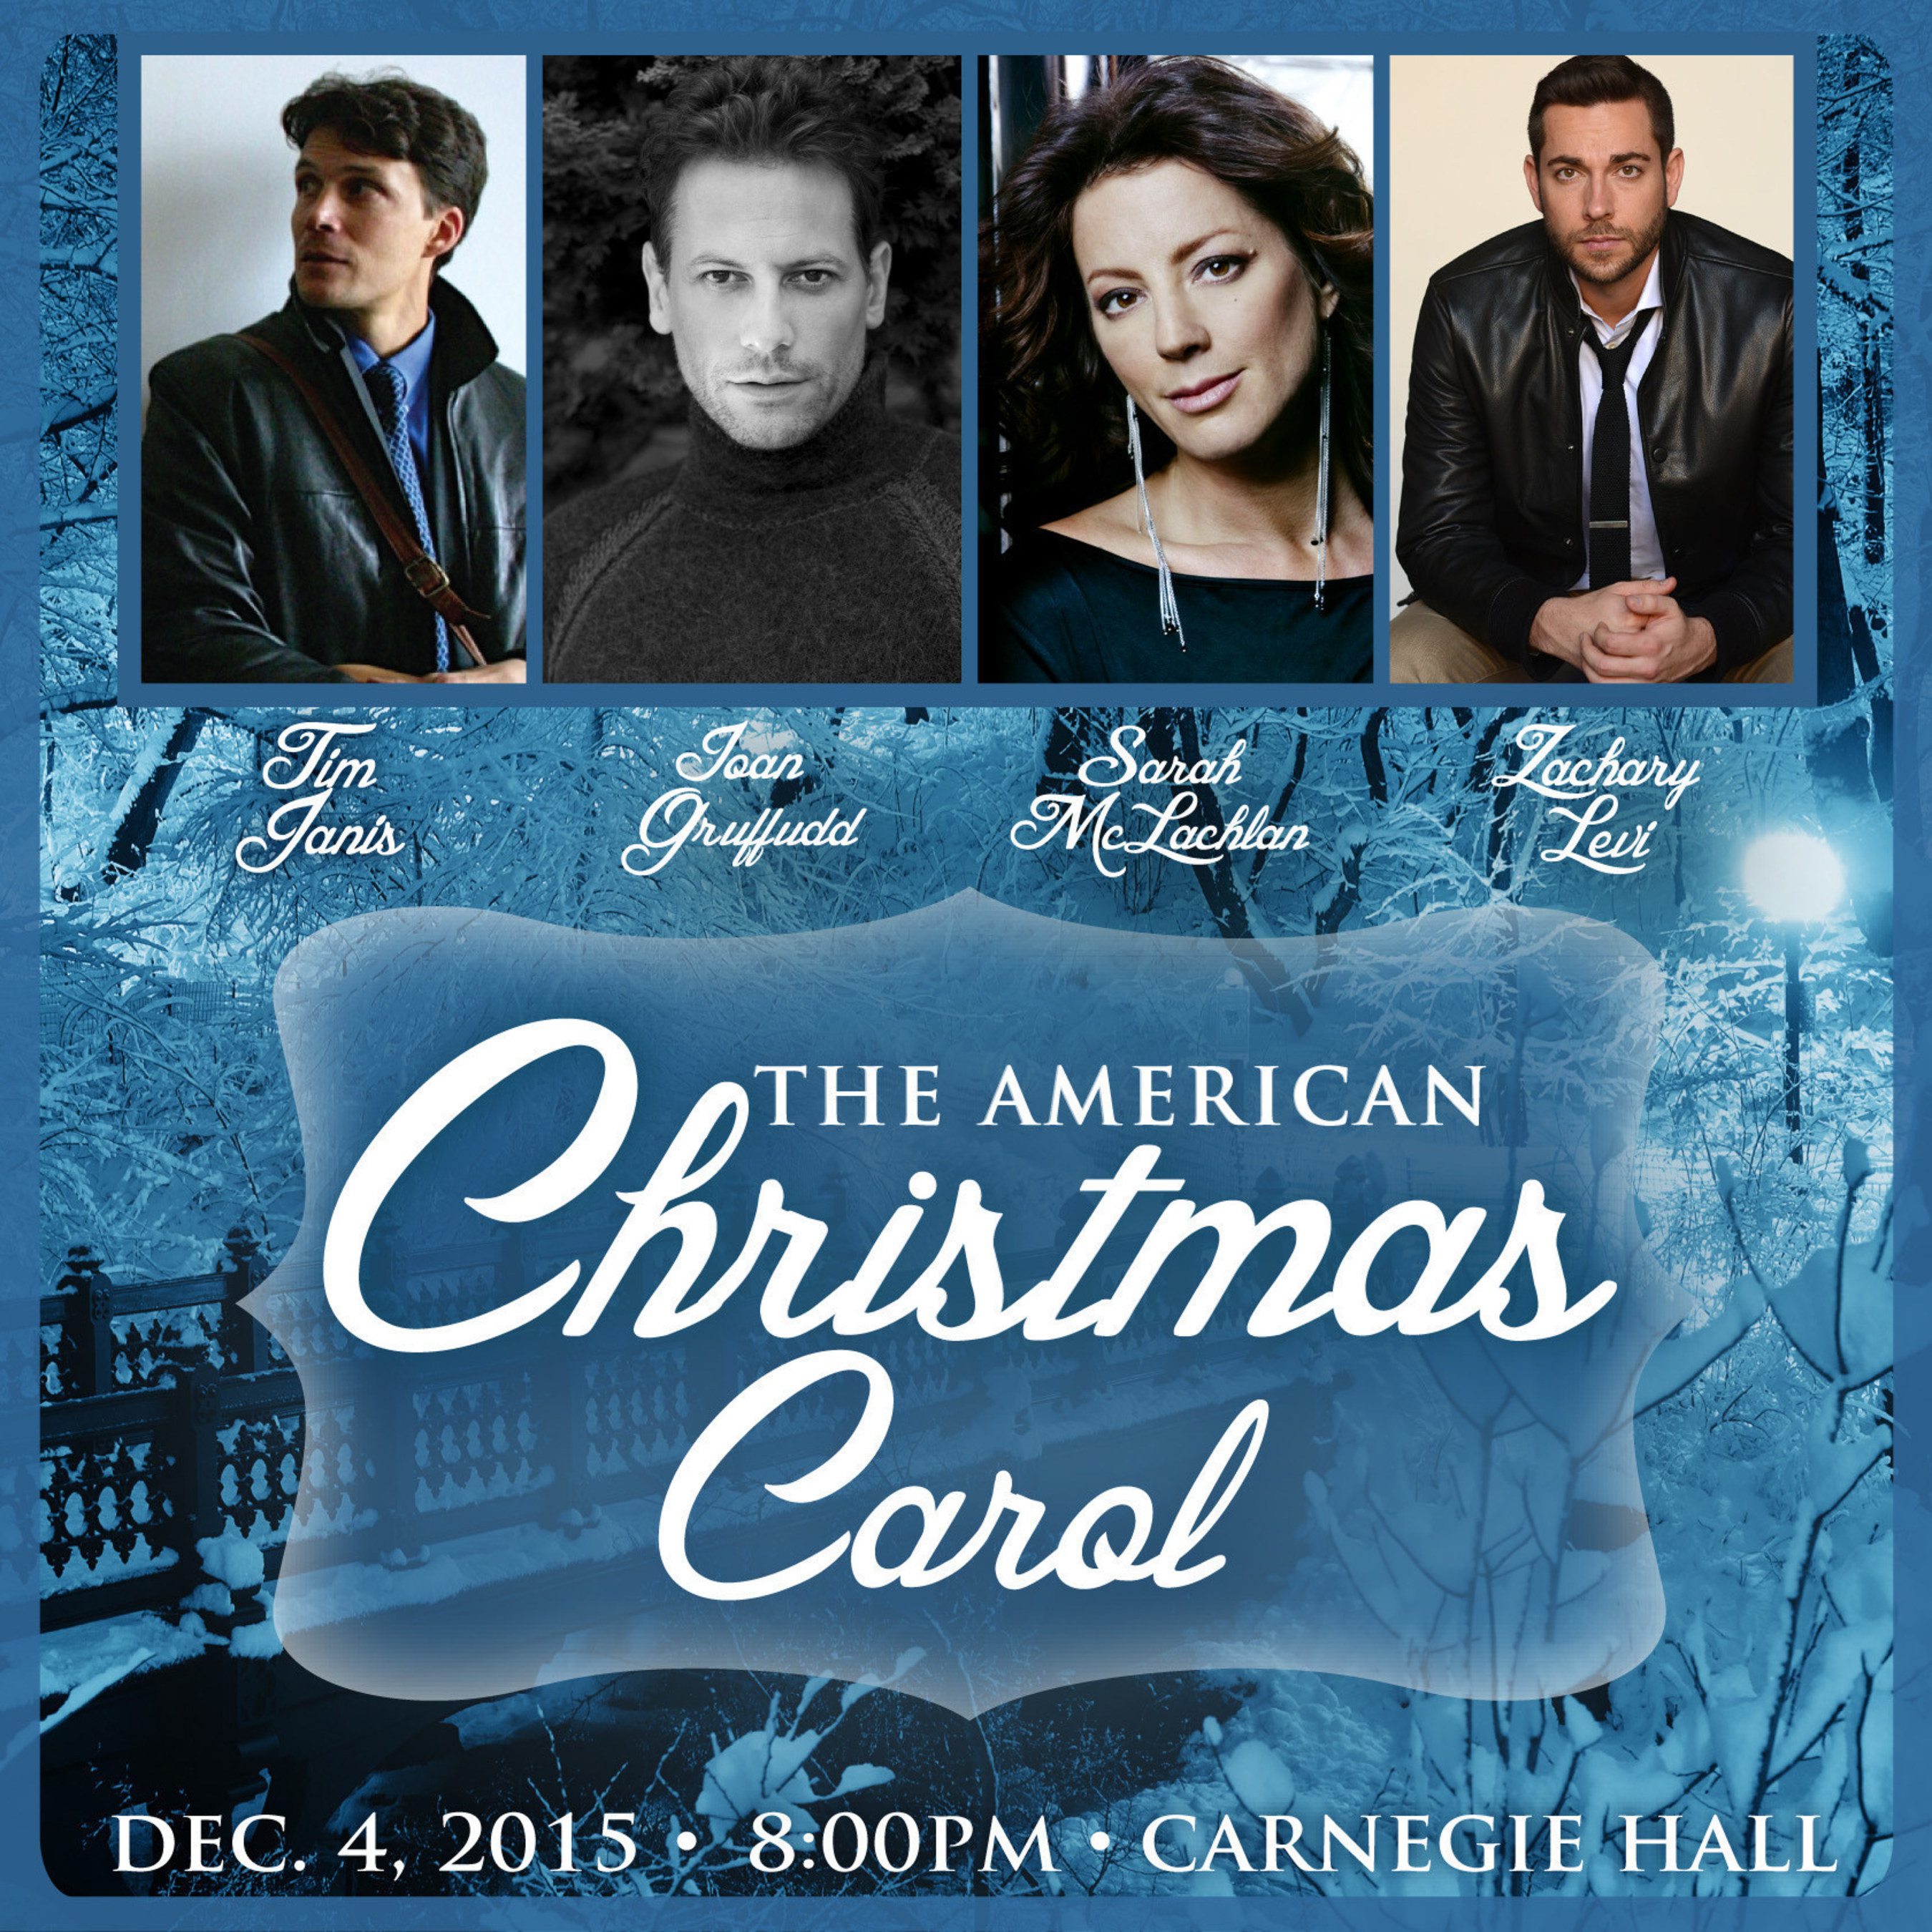 Sarah McLachlan, Ioan Gruffudd, and Zachary Levi join Tim Janis, The American Christmas Carol benefit concert for Kate Winslet's Golden Hat Foundation and The Sarah McLachlan School of Music at Carnegie Hall Dec. 4th